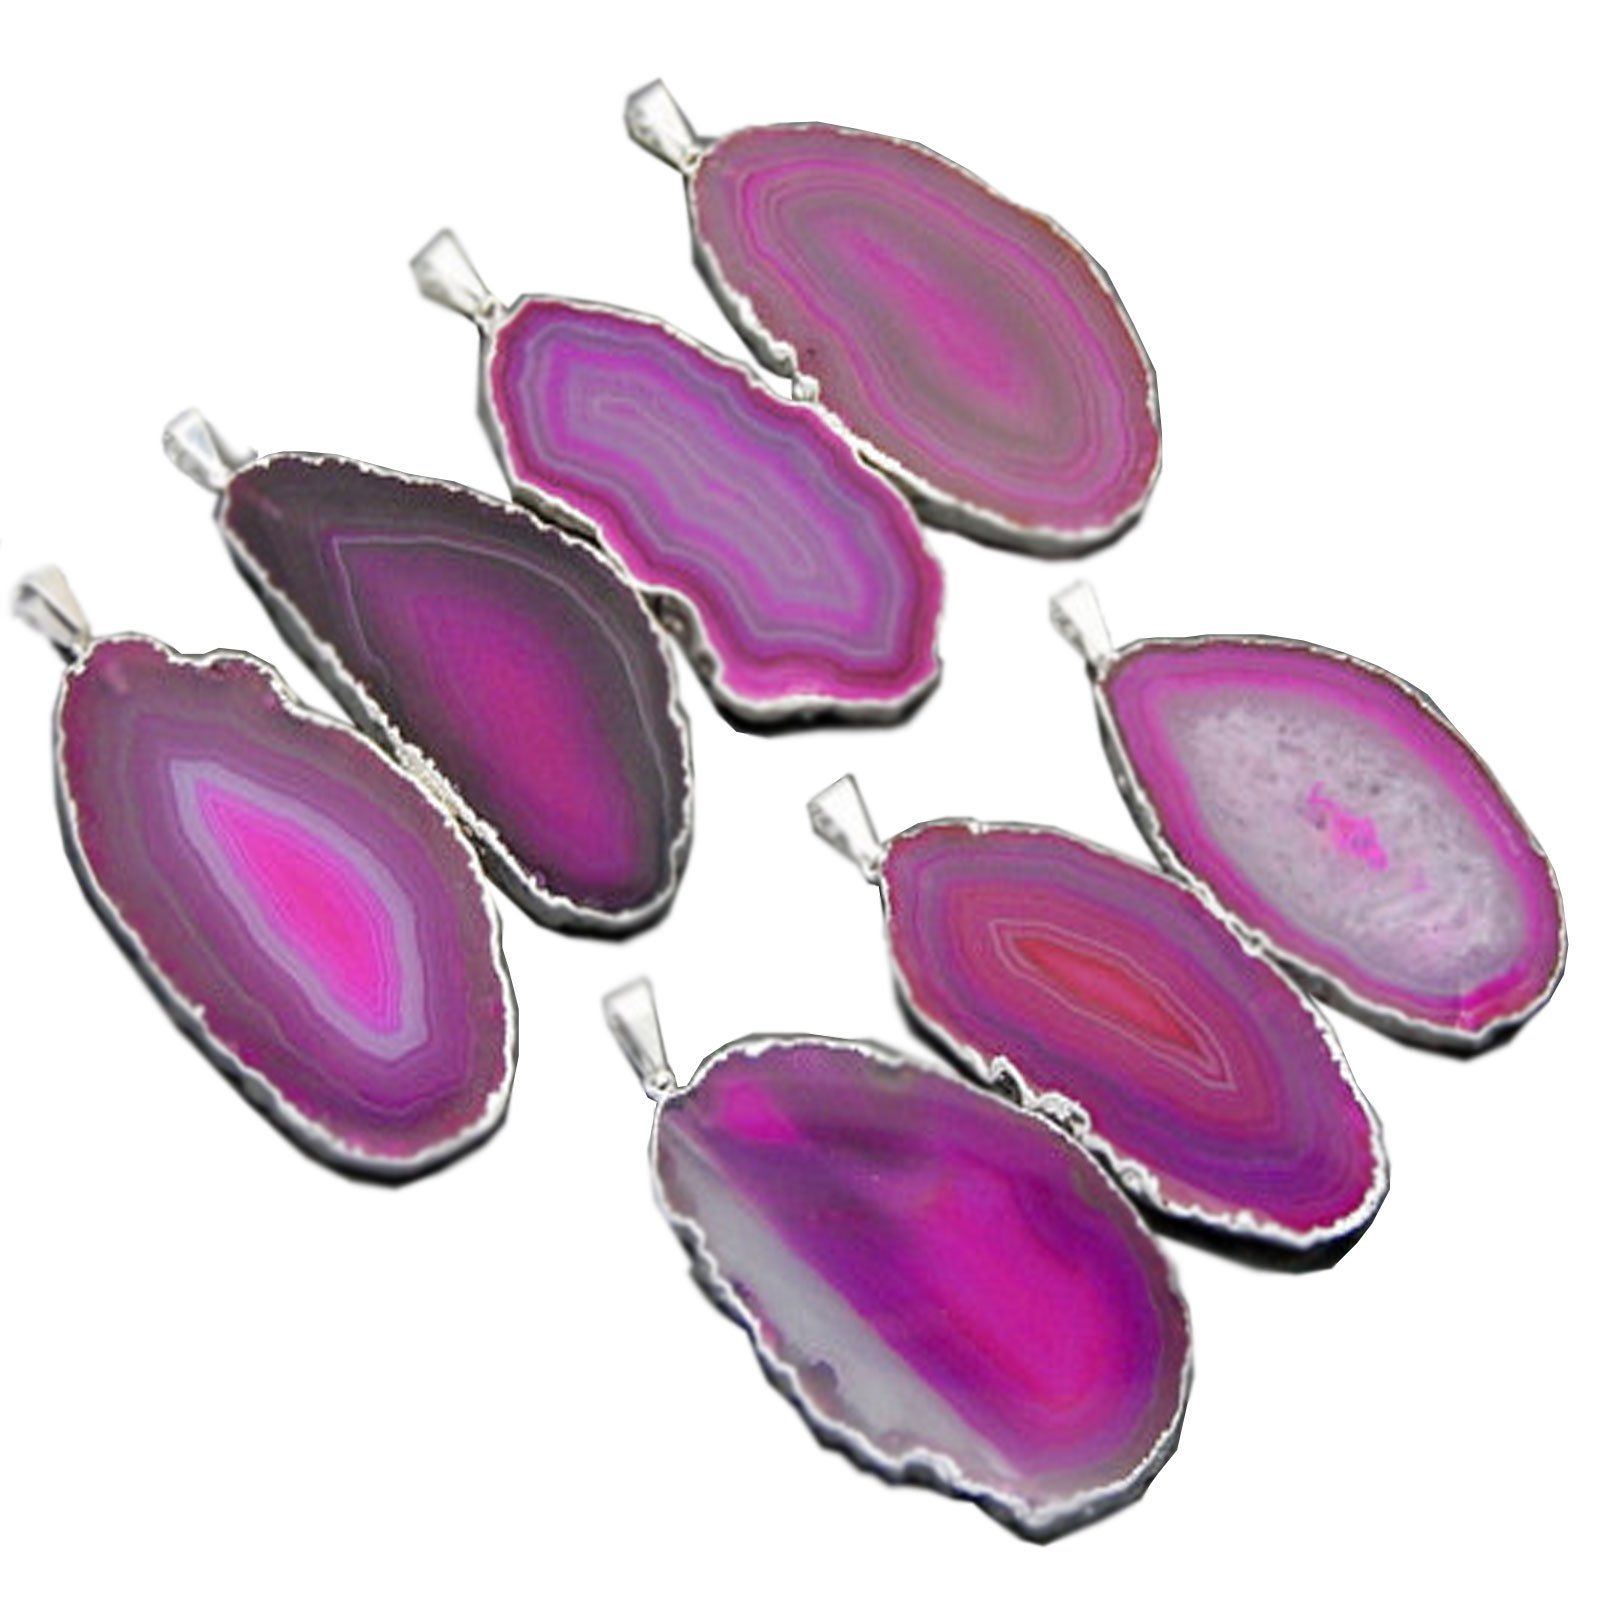 1 Pink Agate Druzy Pendant Plated in Silver RP Exclusive COA AM8B8-02